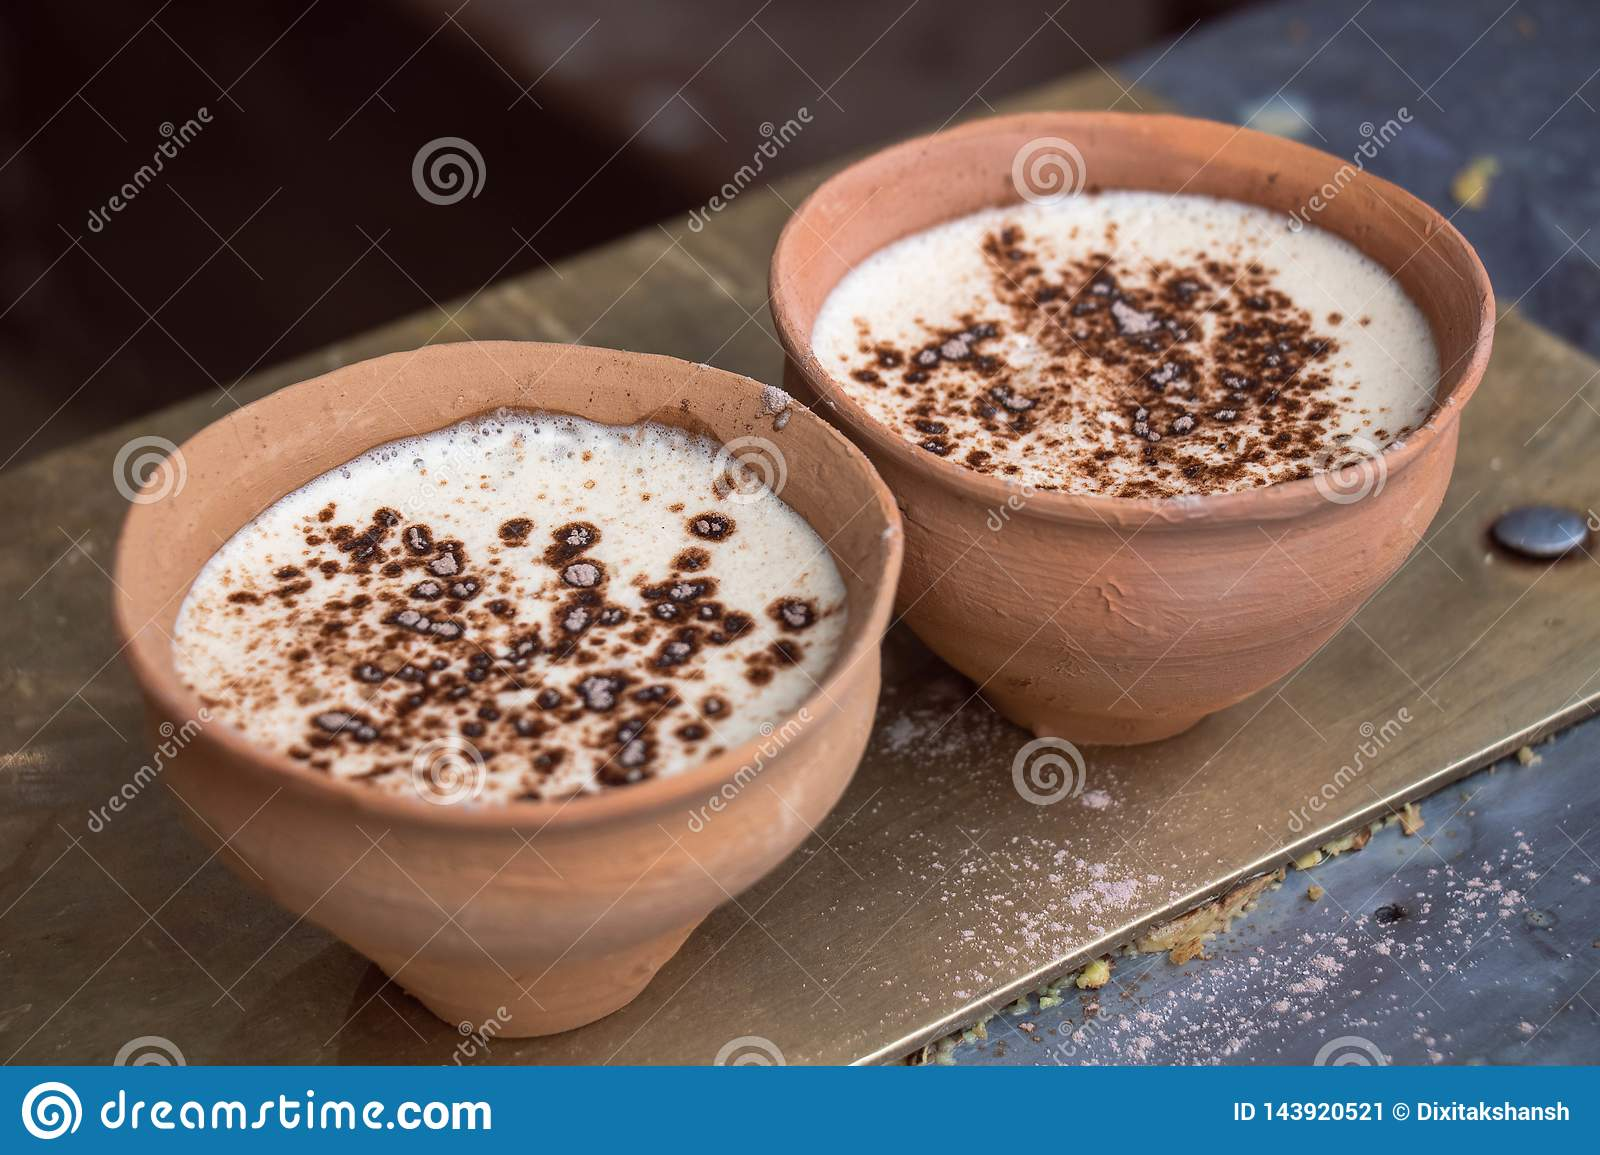 Coffee in Indian Clay Cup - Kulhad